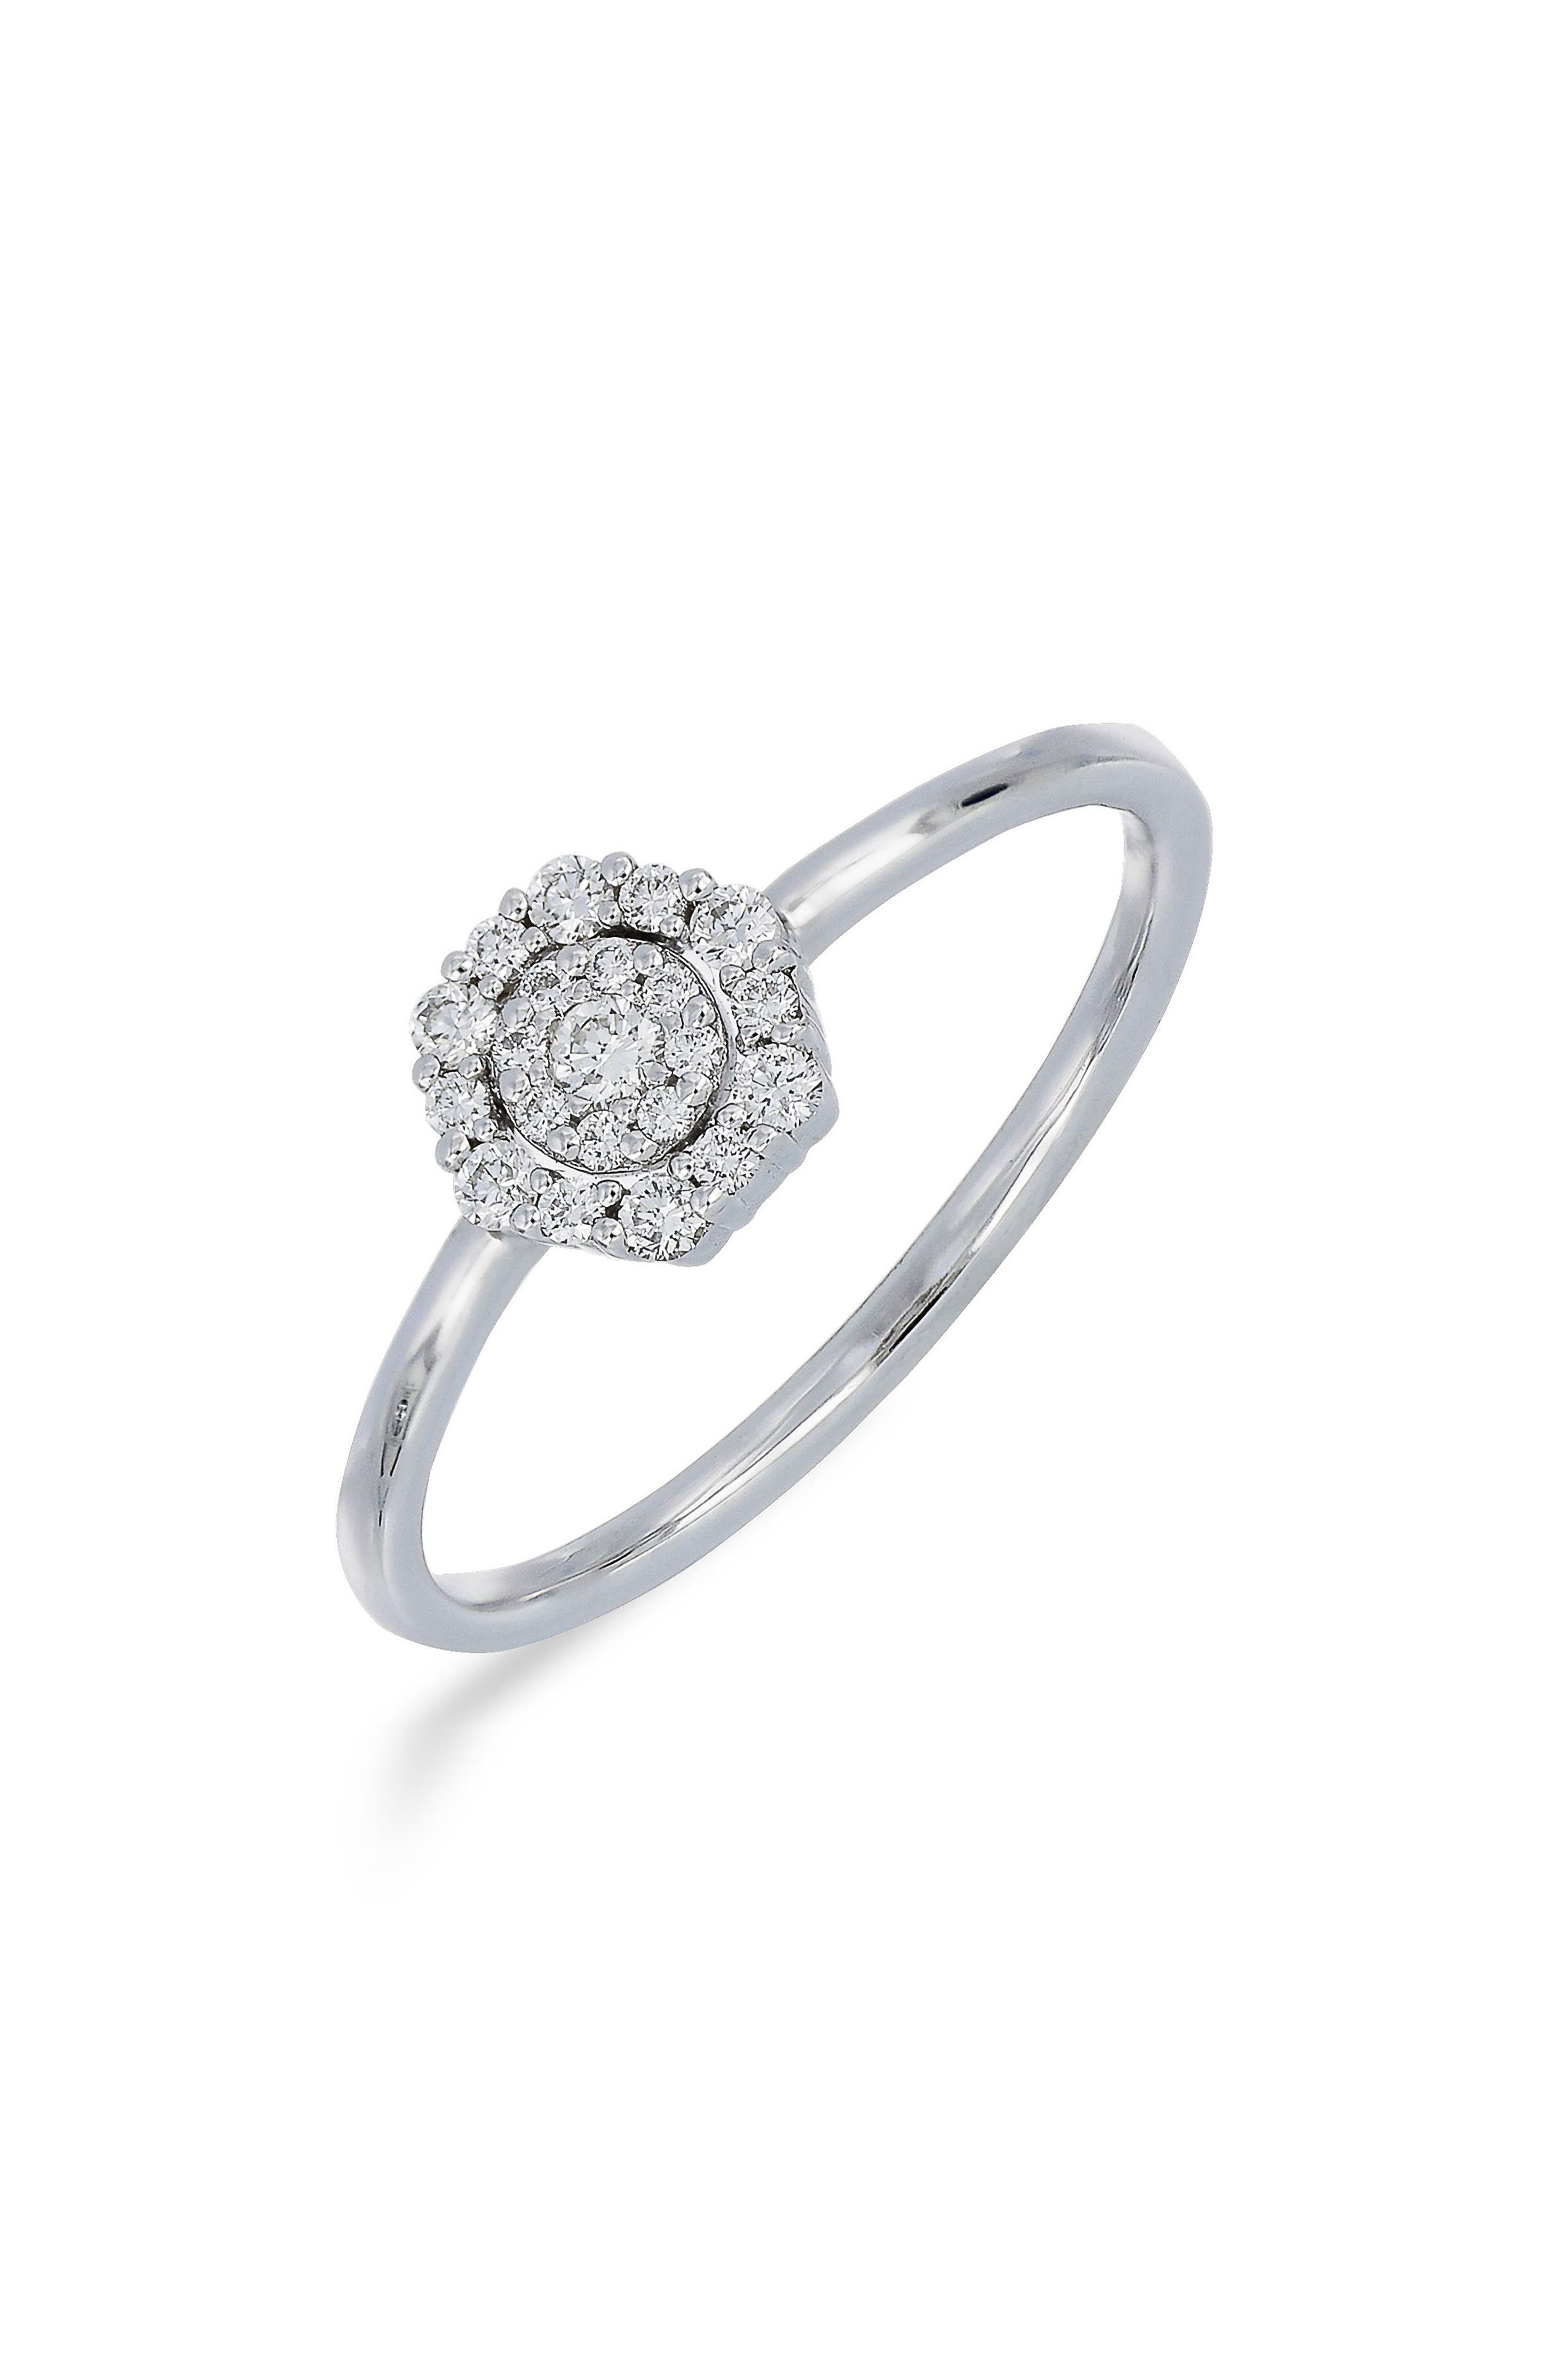 Diamond Cluster Ring,                         Main,                         color, White Gold